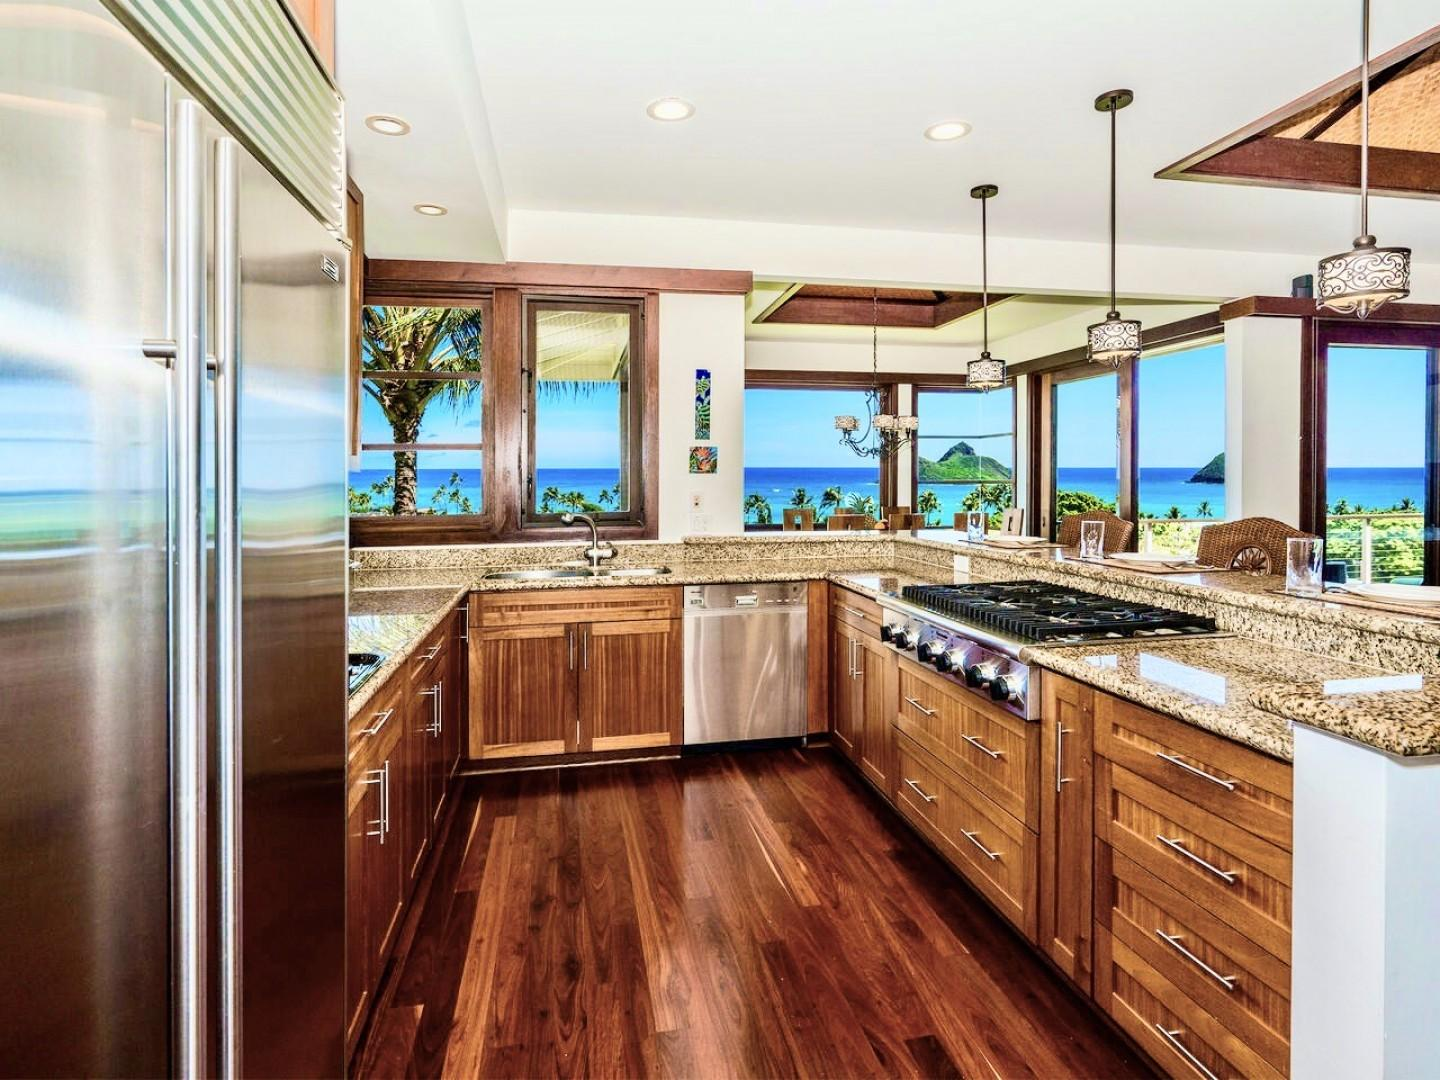 12 - Kitchen and View